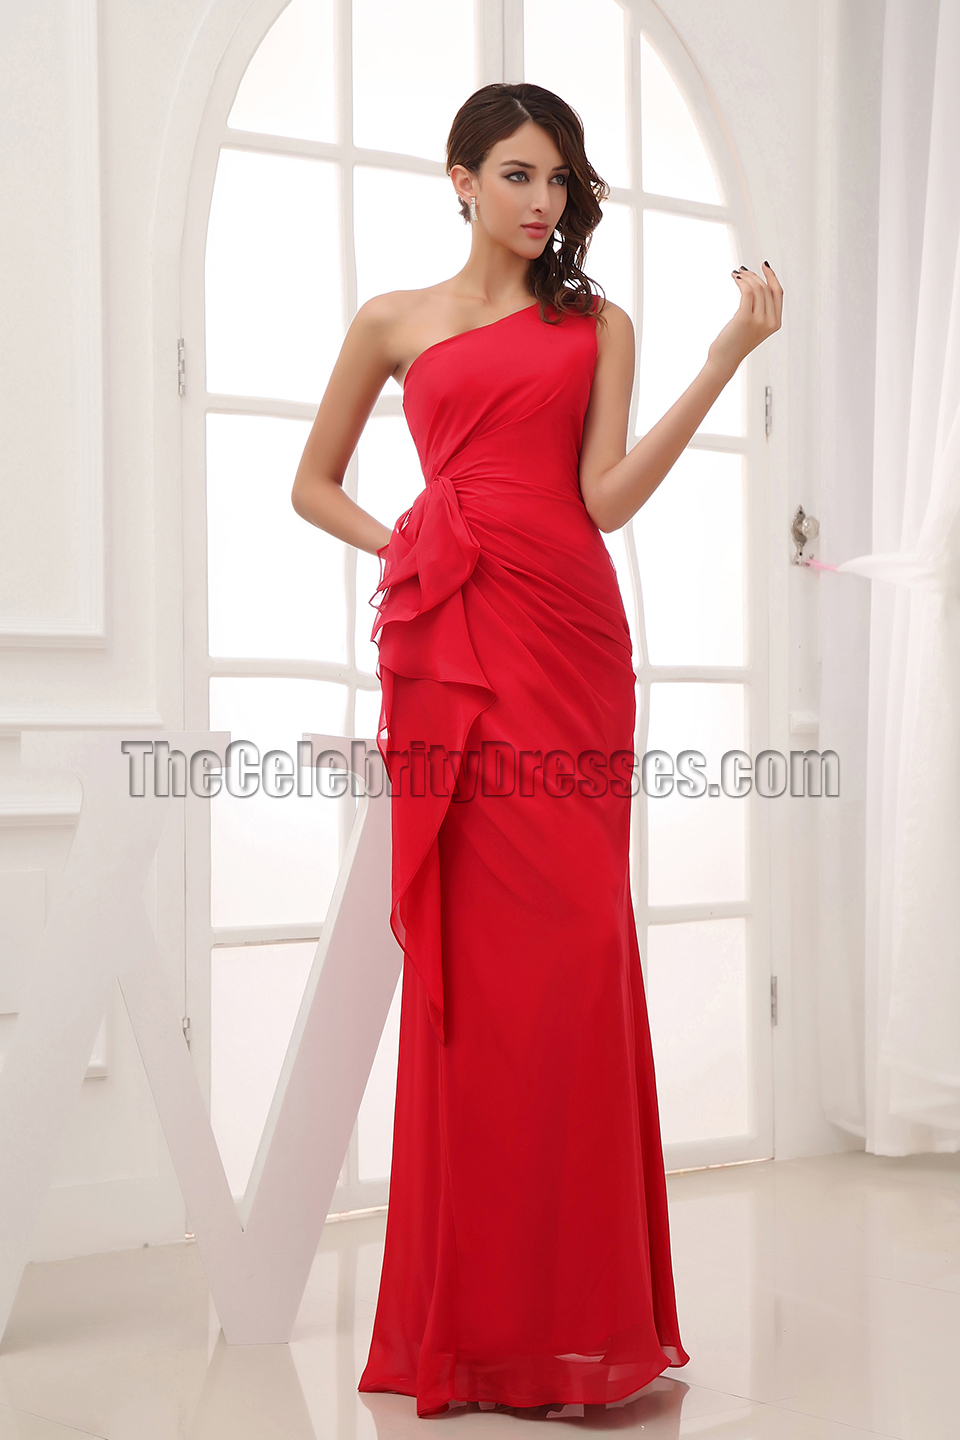 Long red one shoulder bridesmaid dresses prom gown long red one shoulder bridesmaid dresses prom gown thecelebritydresses ombrellifo Gallery